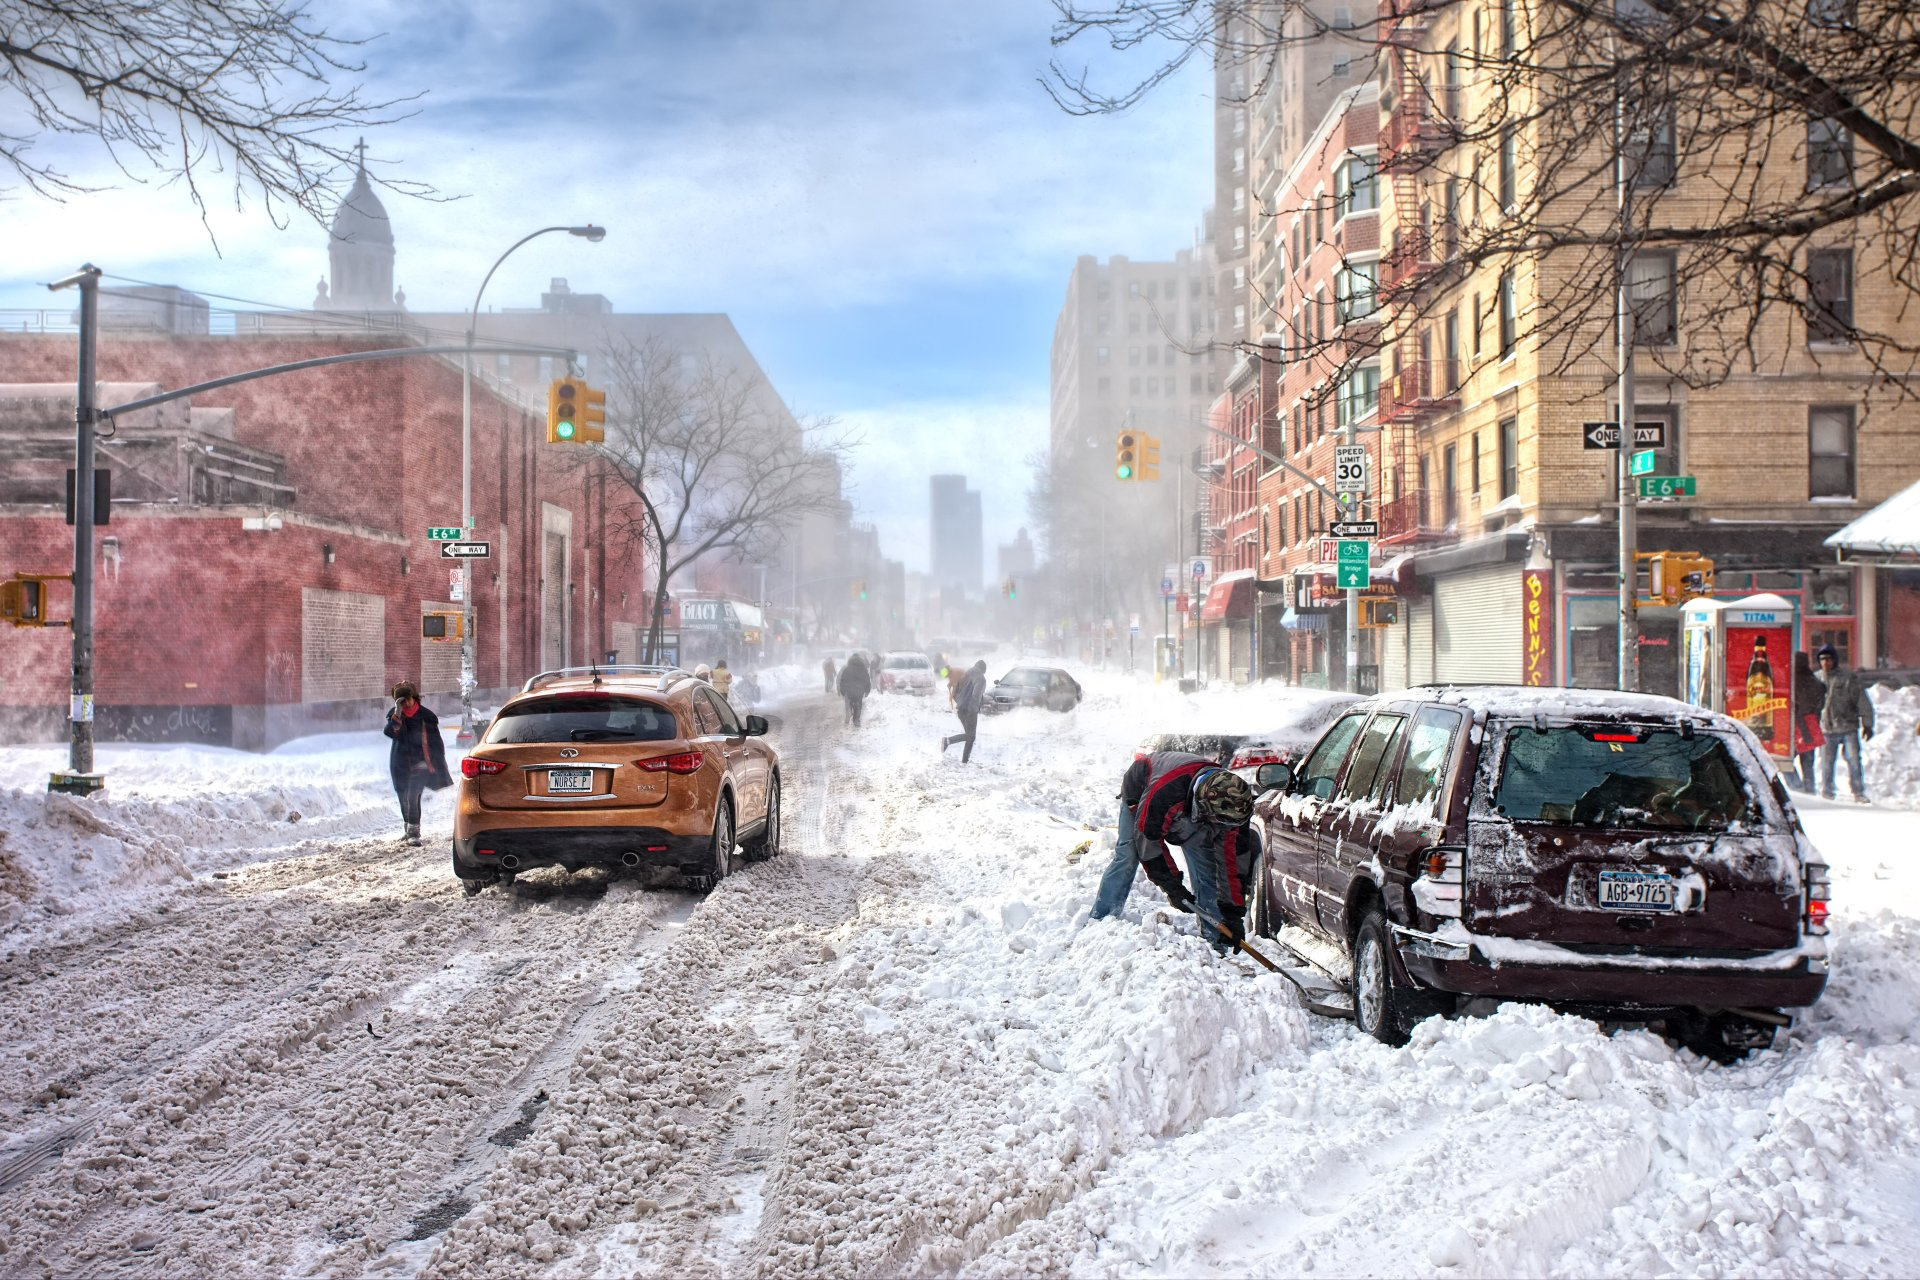 Photography - Winter  Photography Snow Snowfall City Building Car People Wallpaper